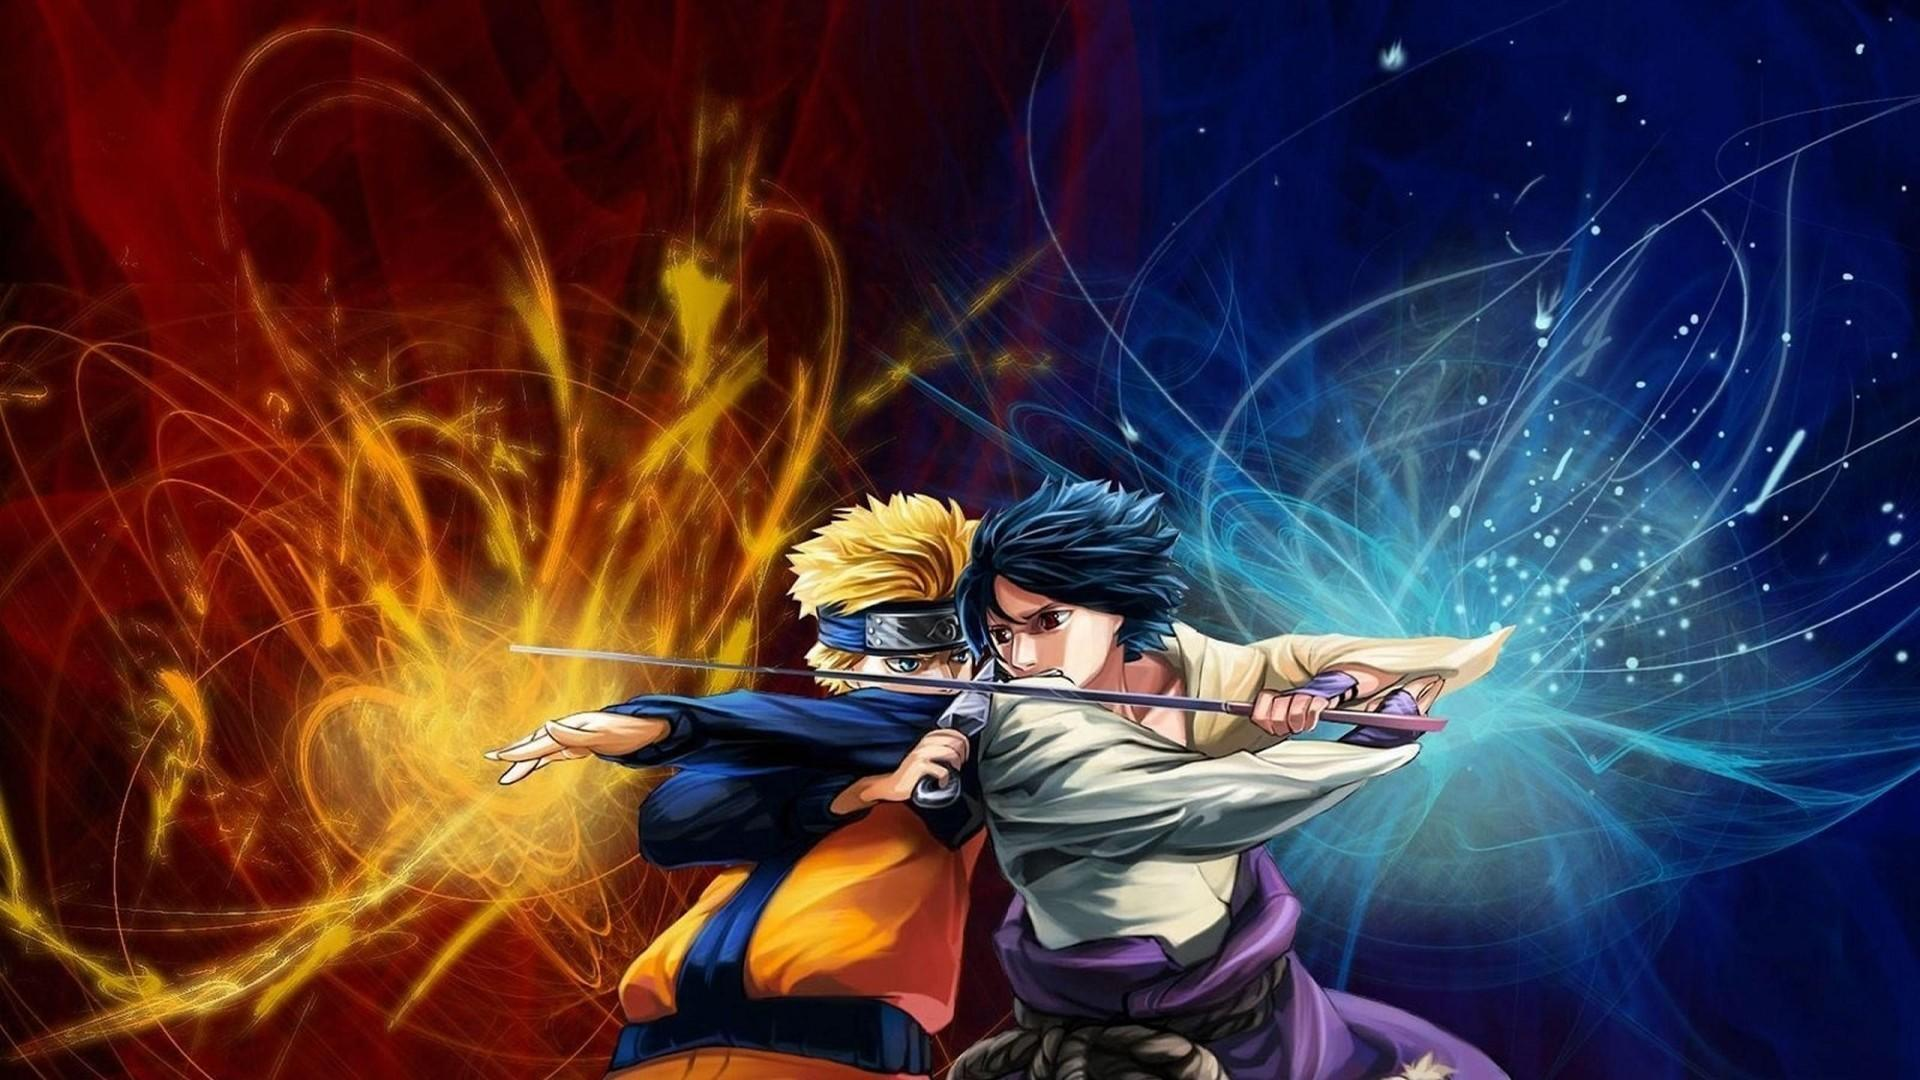 Naruto And Sasuke Wallpapers Sf Wallpaper